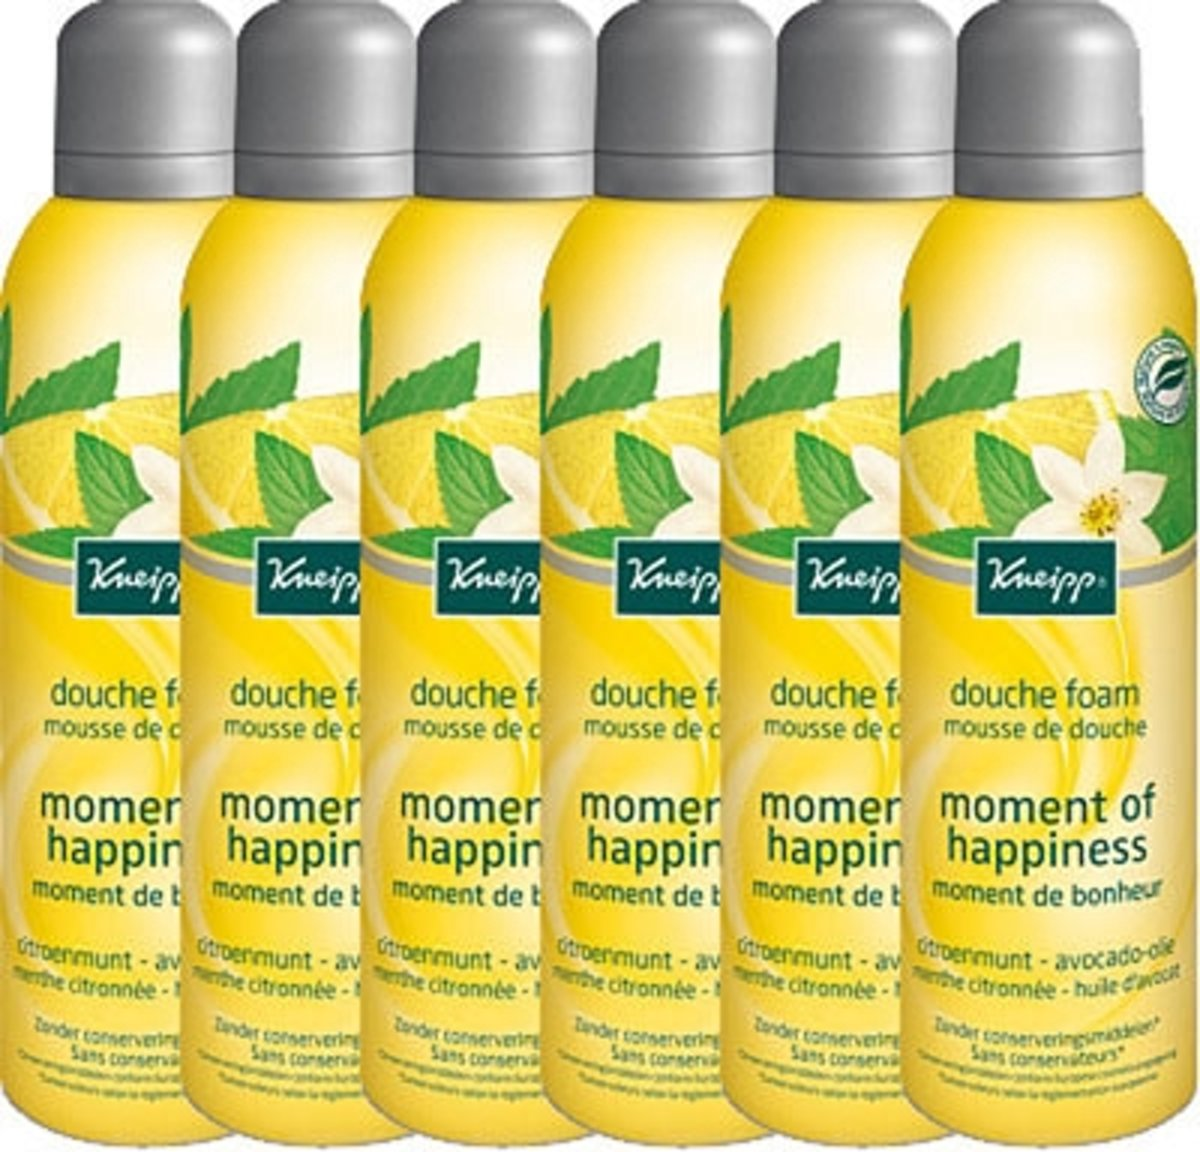 Kneipp Douche Foam Moment Of Happiness Voordeelverpakking